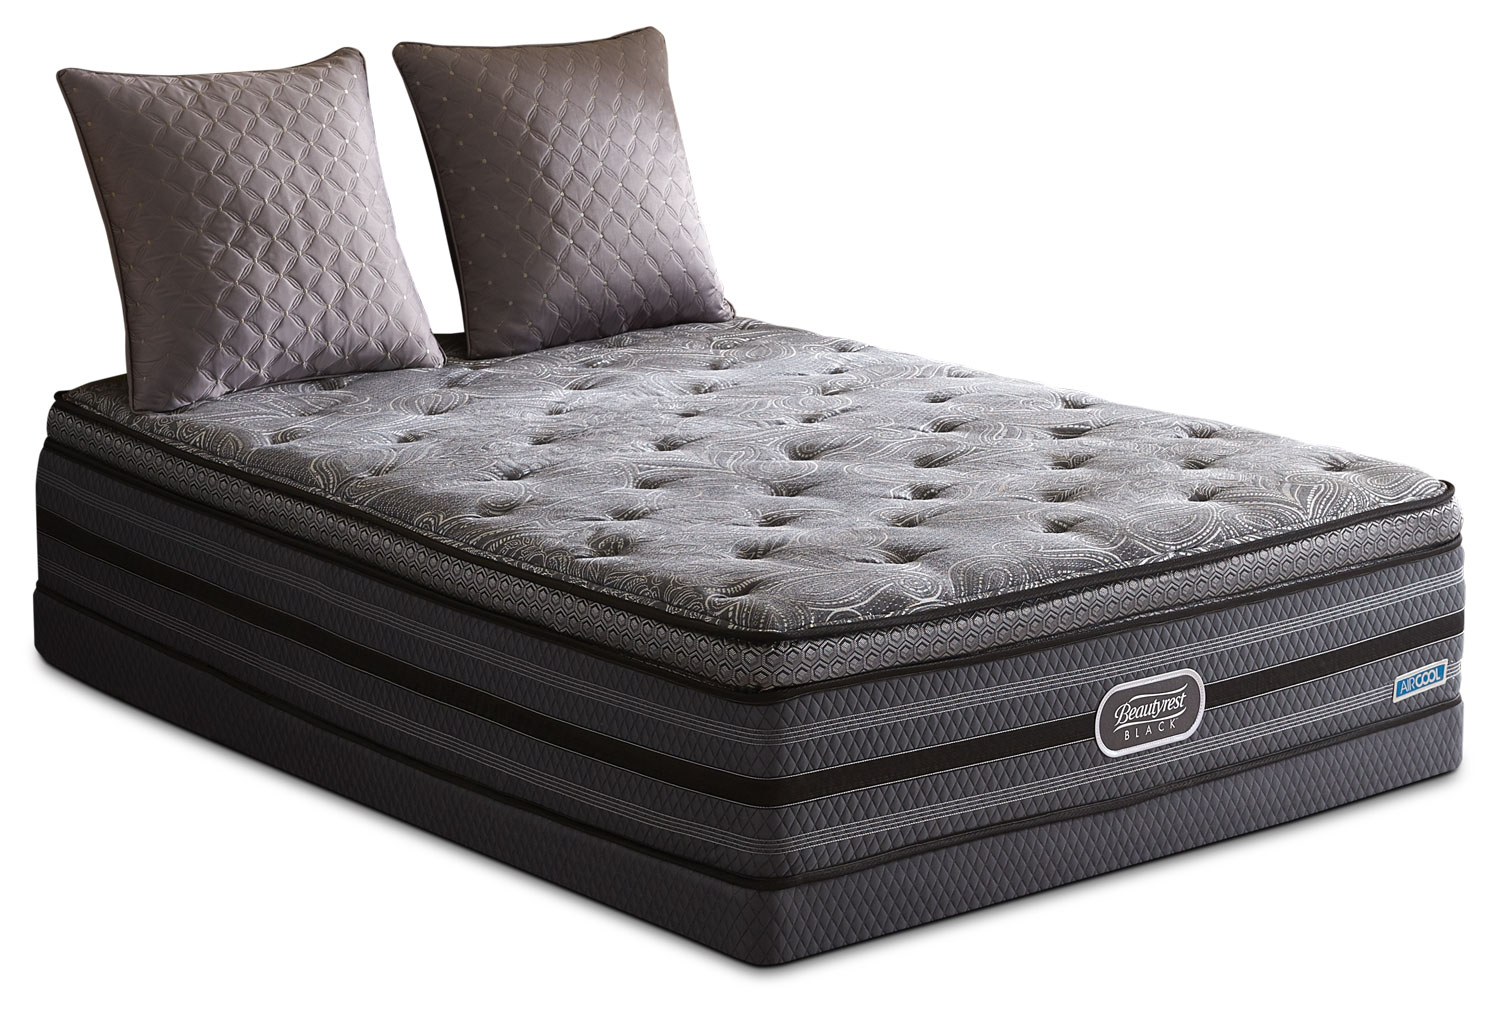 beautyrest simmons. Simmons Beautyrest Black Legendary Luxury Firm